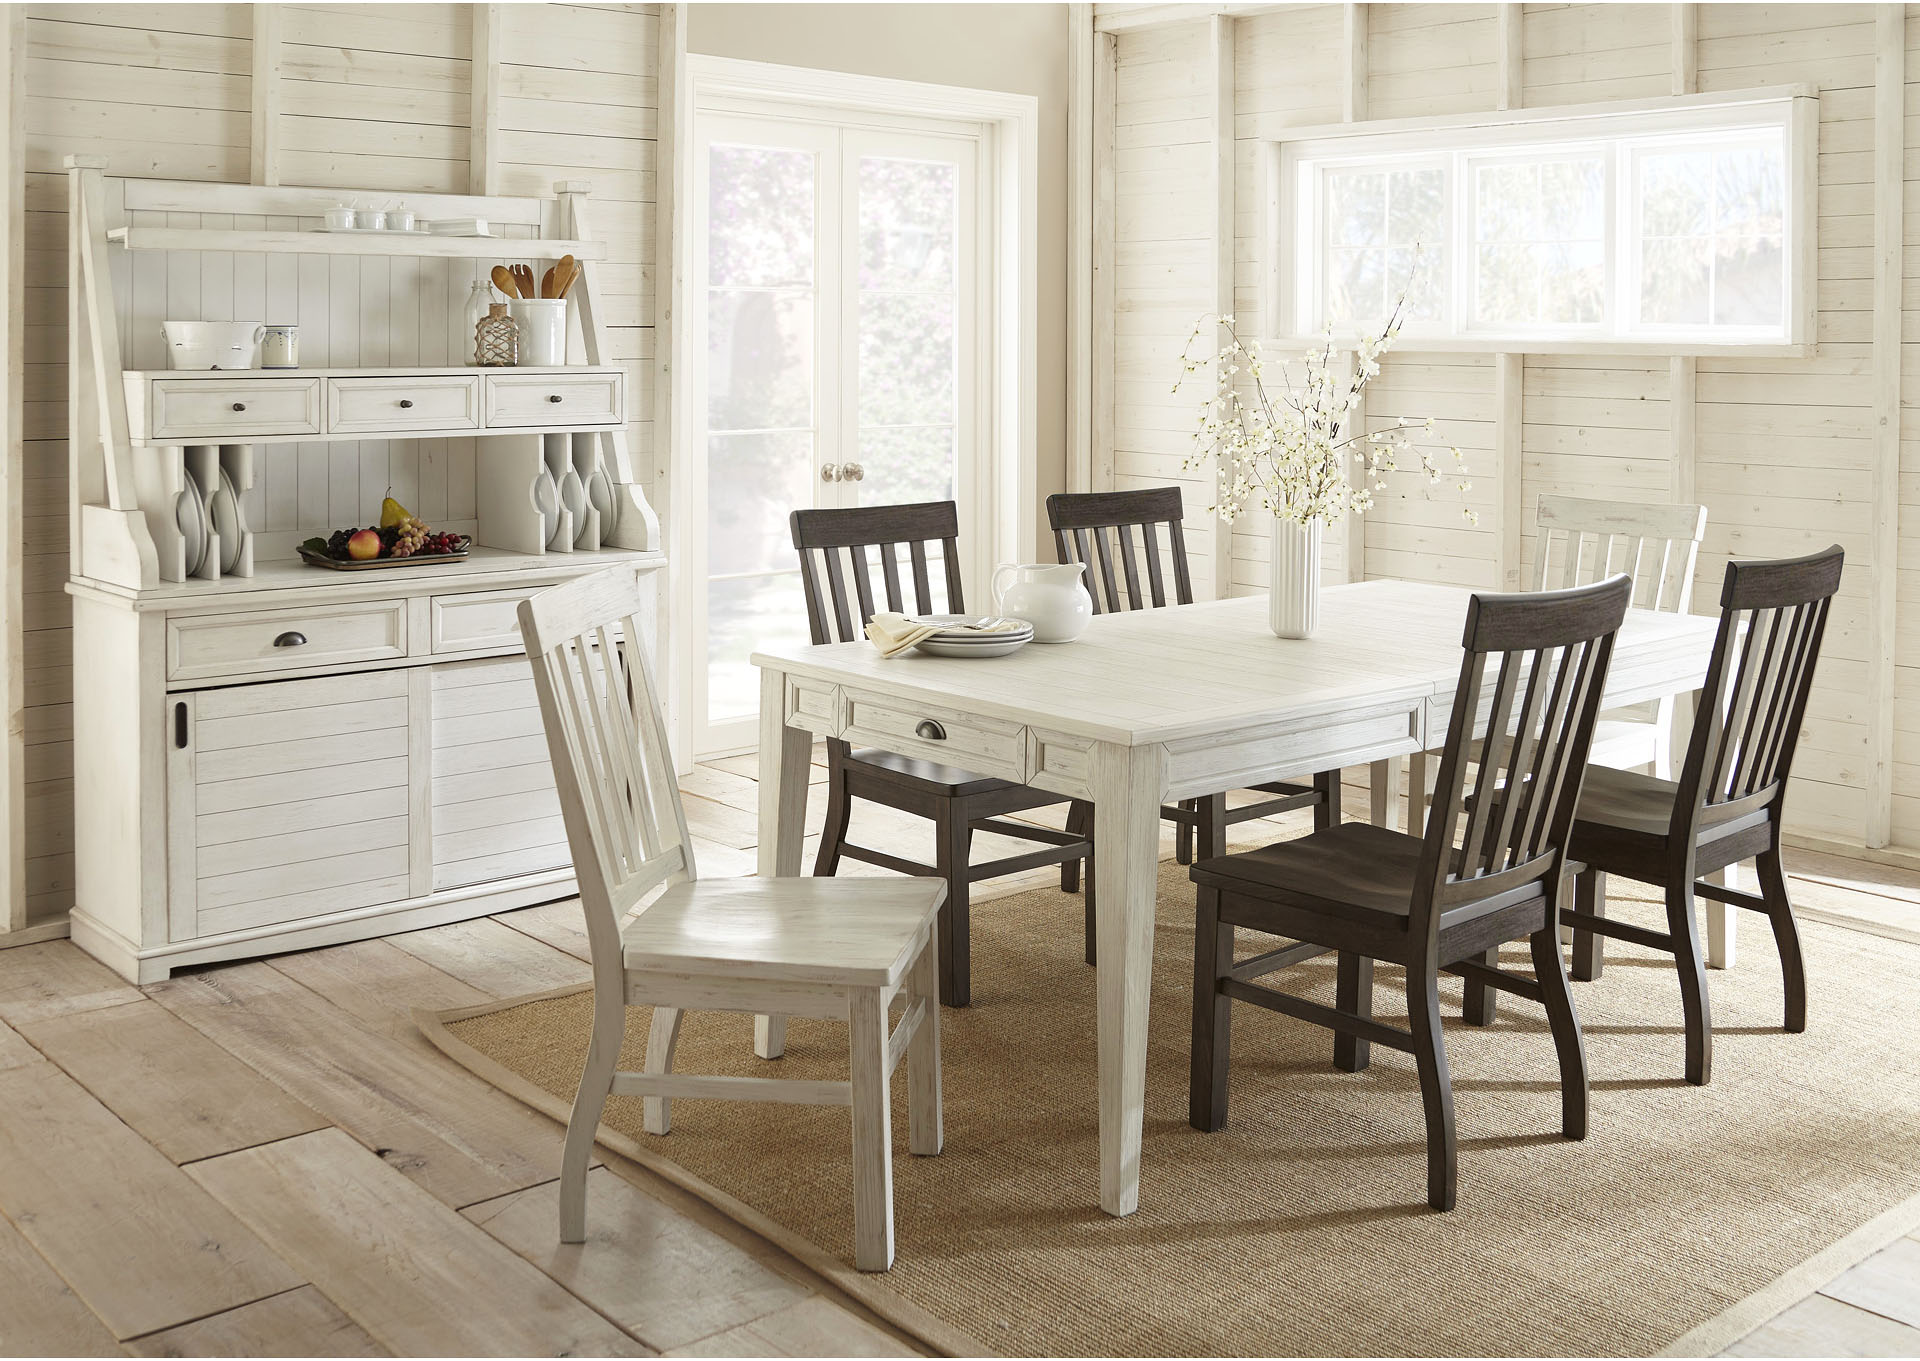 Cayla Two Tone Rectangular Dining Set W, White Dining Room Table And Hutch